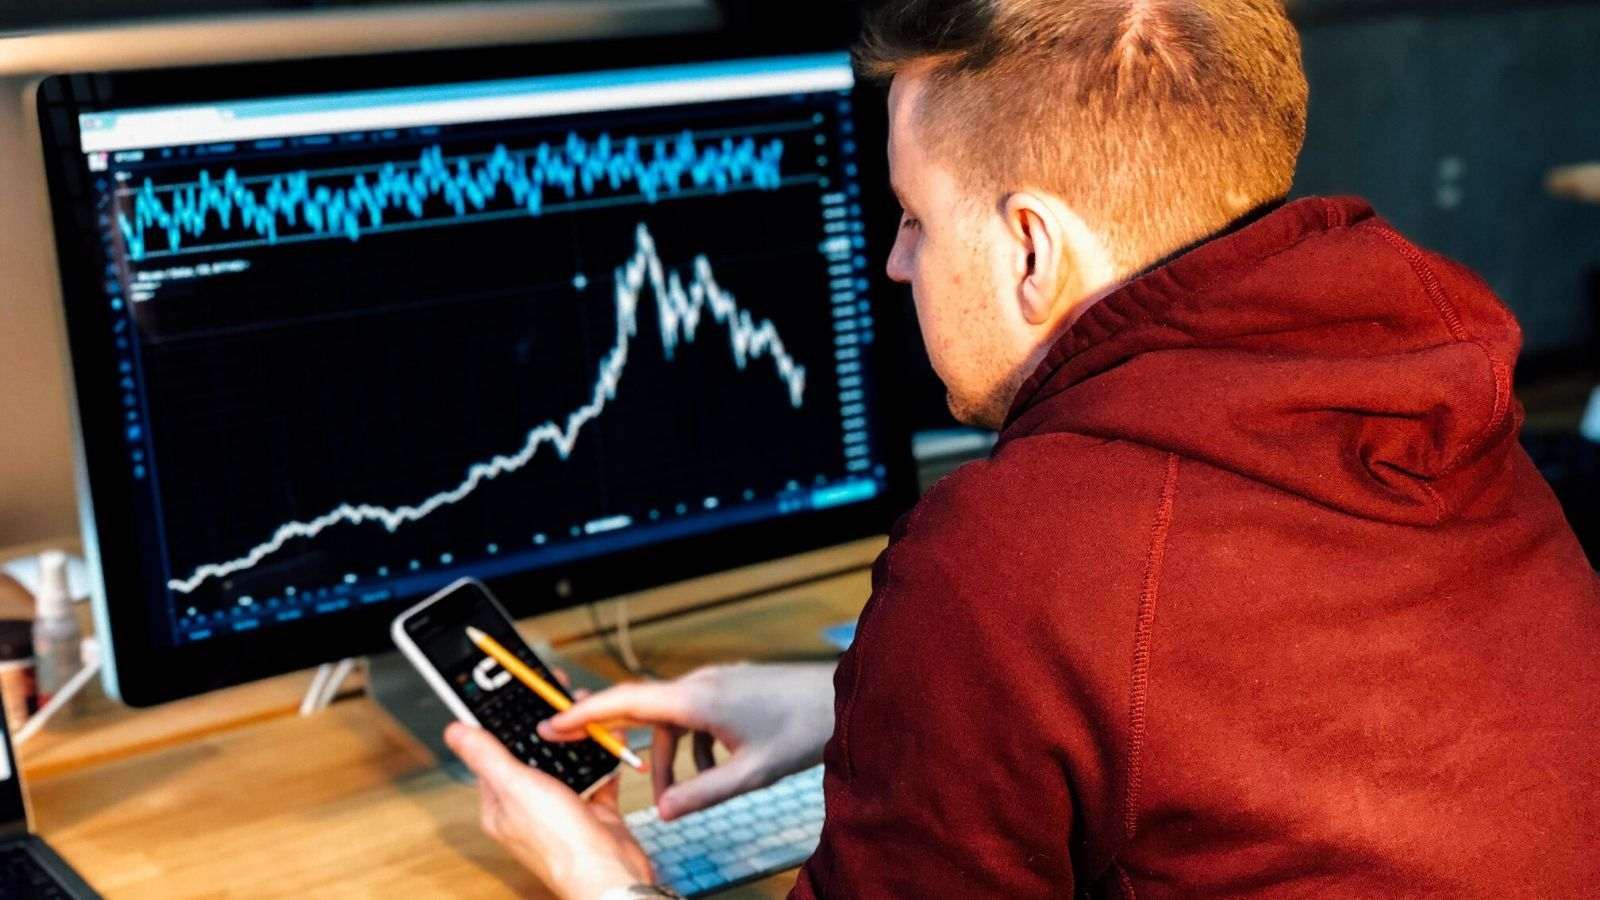 Learn to day trade from home with this 10-course online bootcamp